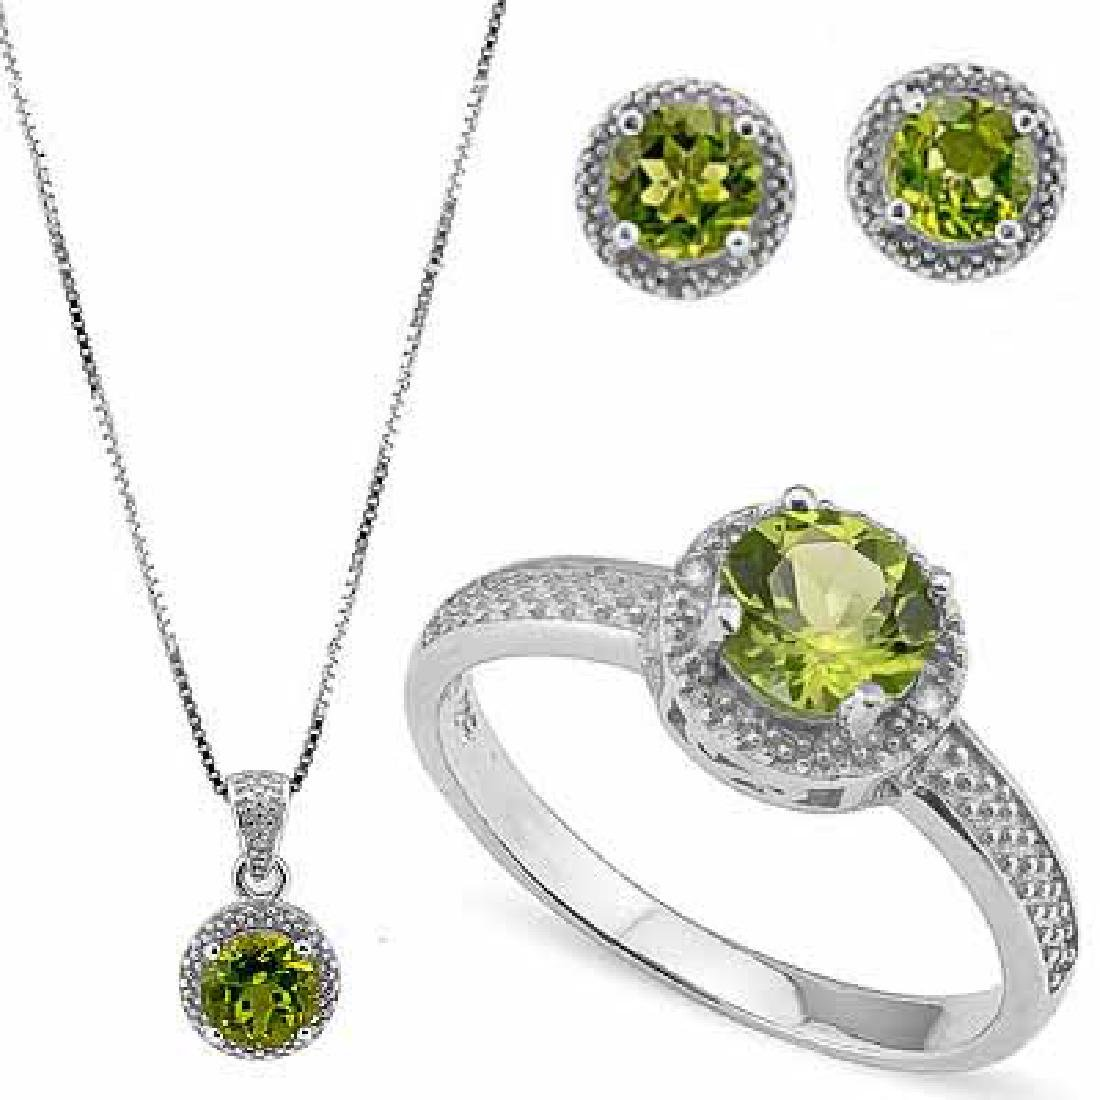 3.518 CARAT TW (9 PCS) PERIDOT & GENUINE DIAMOND PLATIN